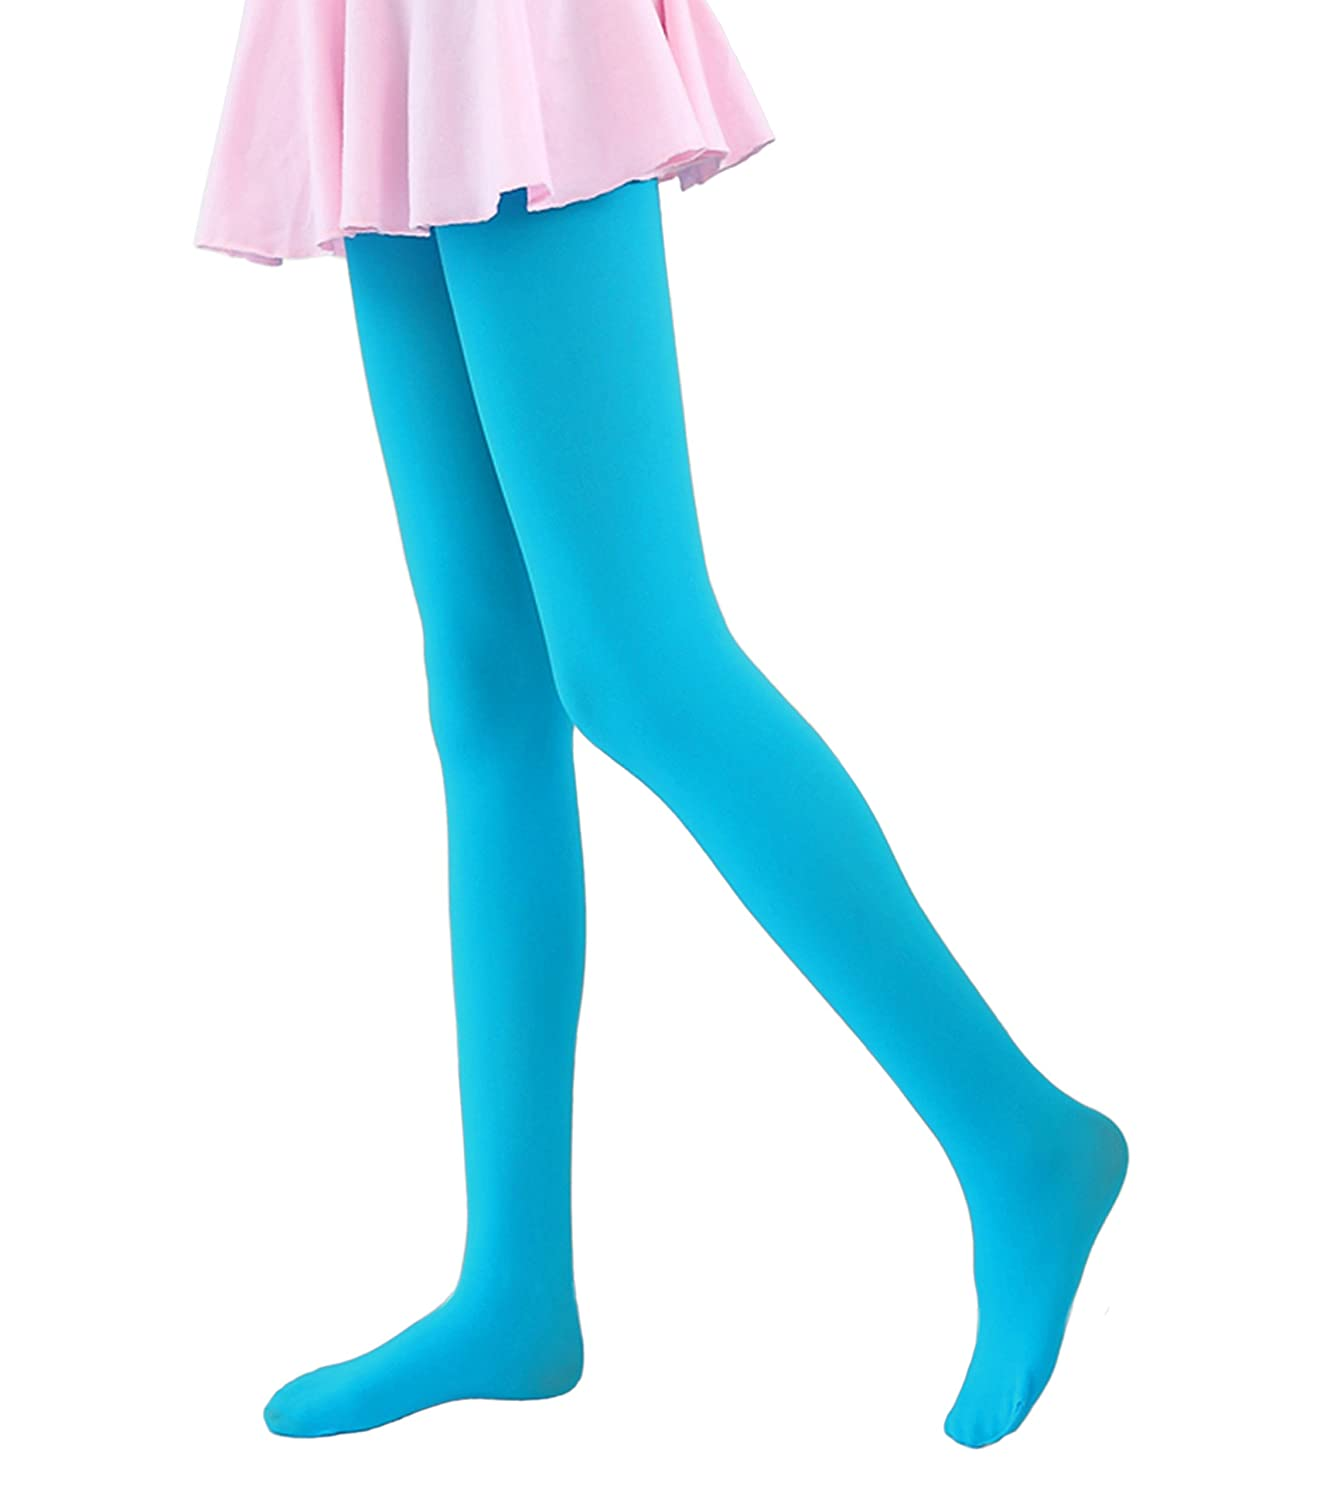 Astage 2pack of Girls Tights, Dance Stockings Astage-C-BLDDKW